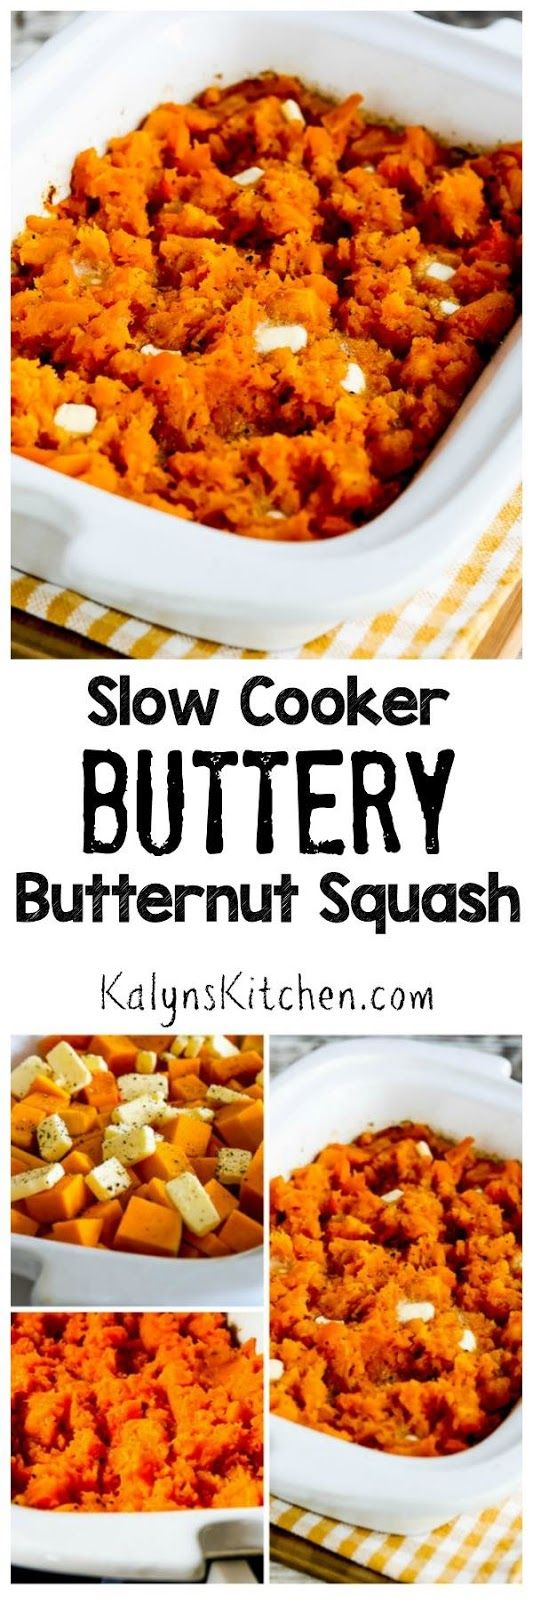 Slow Cooker Buttery Butternut Squash for a Crowd is an easy 4-ingredient side dish for a holiday meal or special dinner! I used the Crock-Pot Casserole Crock Slow Cooker, but you can use a large oval slow cooke r if that's what you have. [found on KalynsKitchen.com]